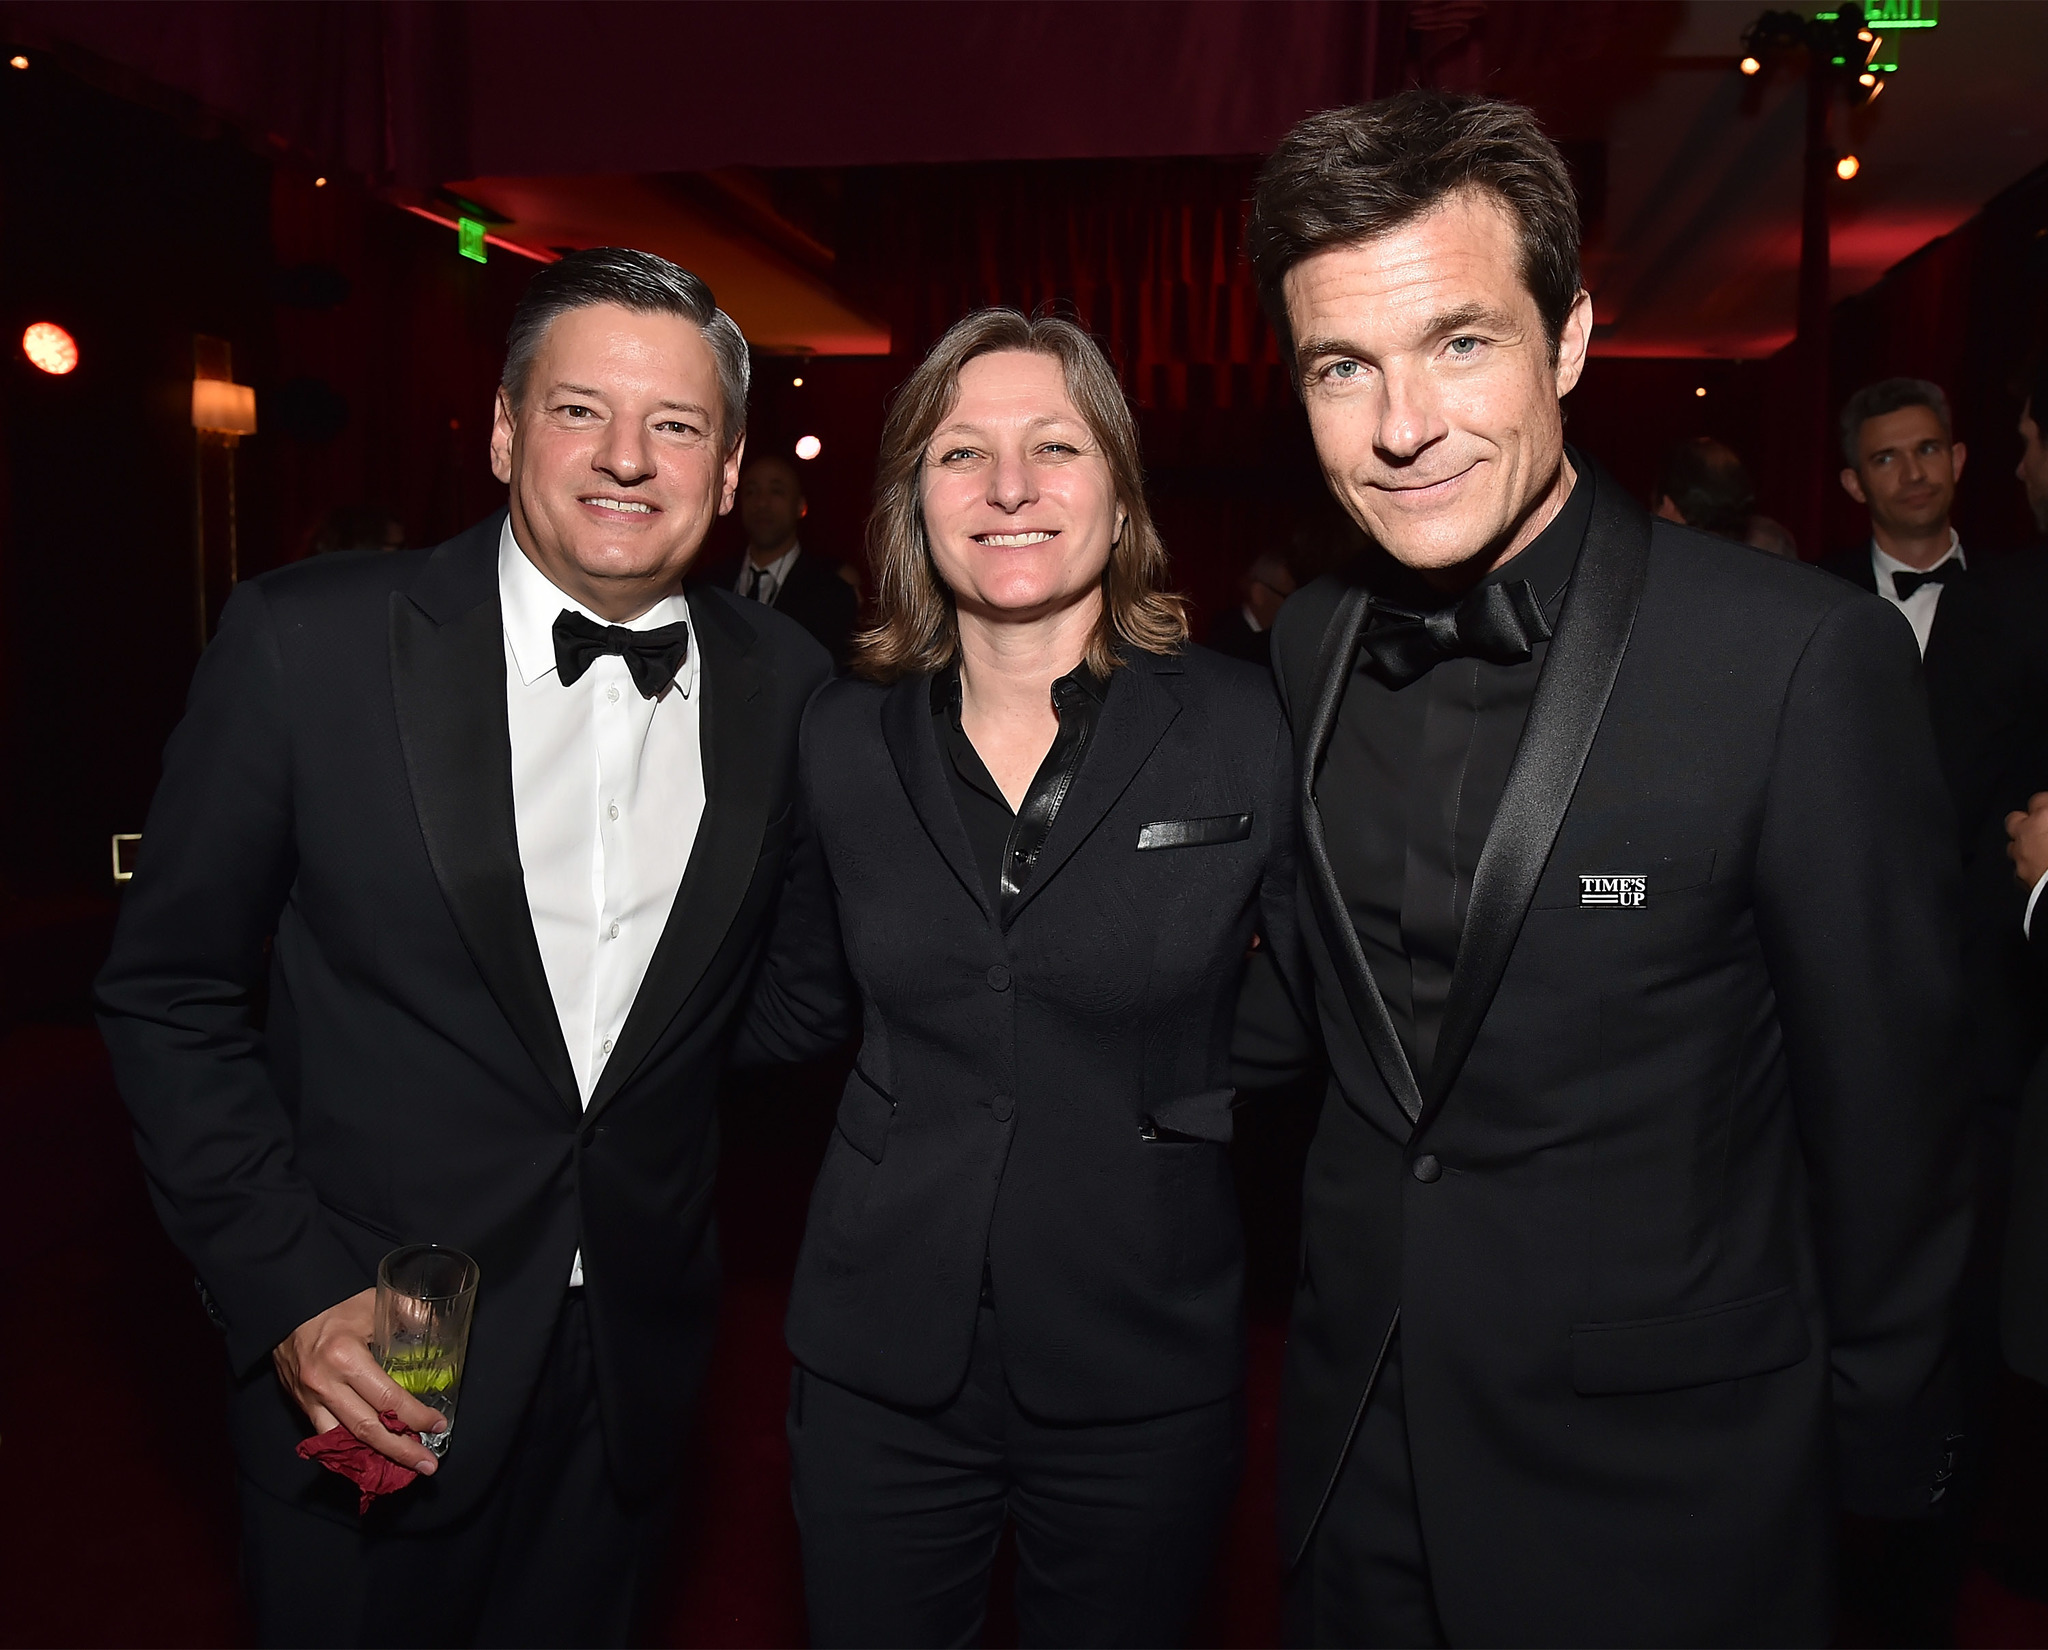 Jason Bateman, Ted Sarandos, and Cindy Holland at an event for The 75th Annual Golden Globe Awards 2018 (2018)